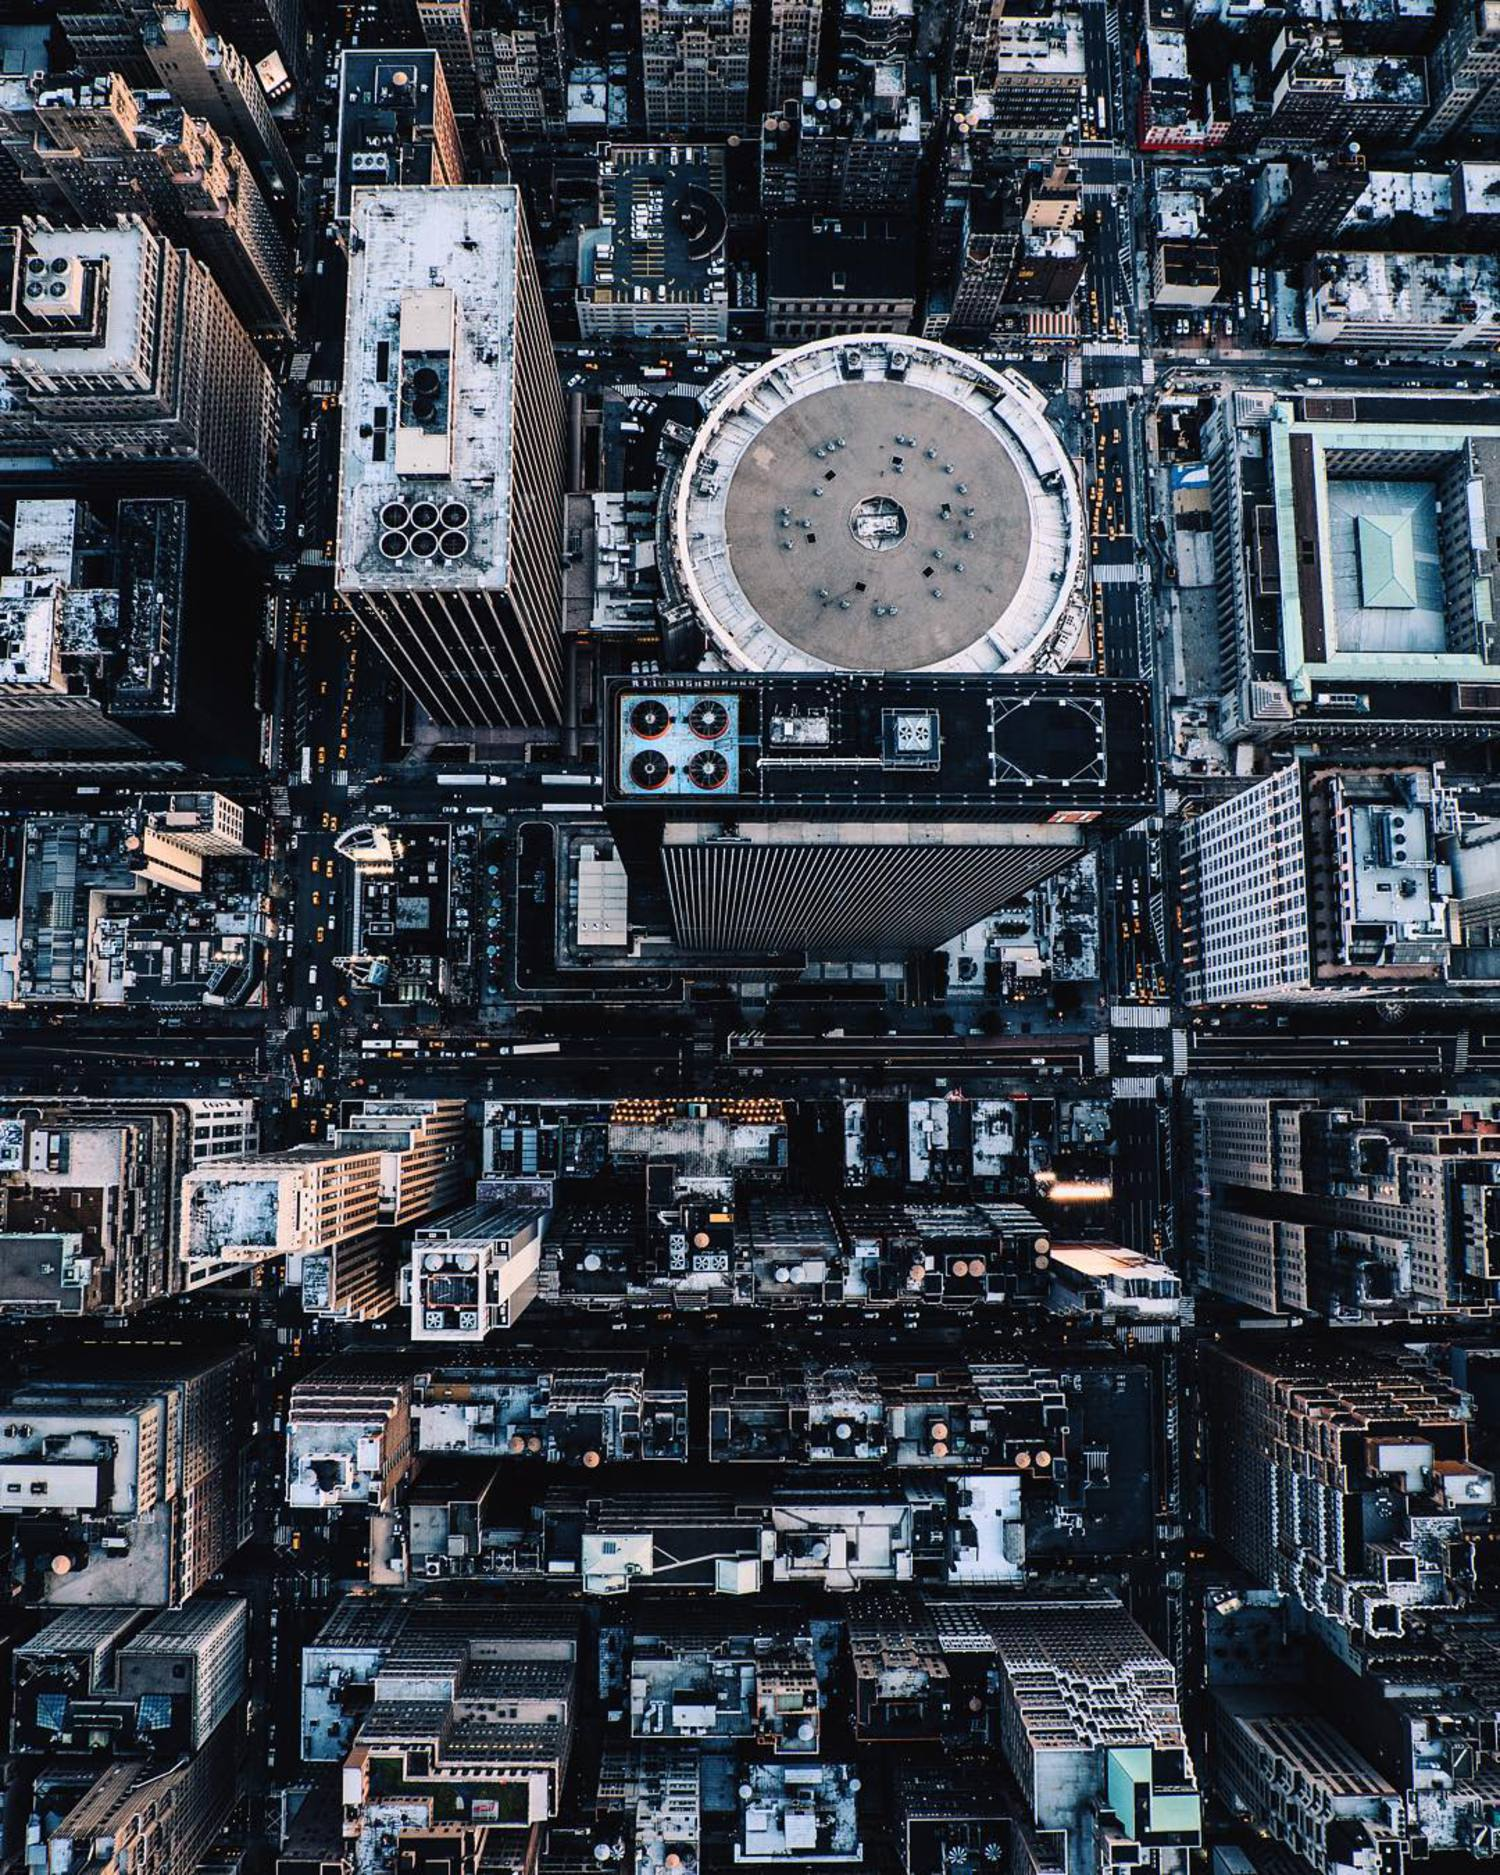 - integrated circuitry -  @nyonair || @flynyon